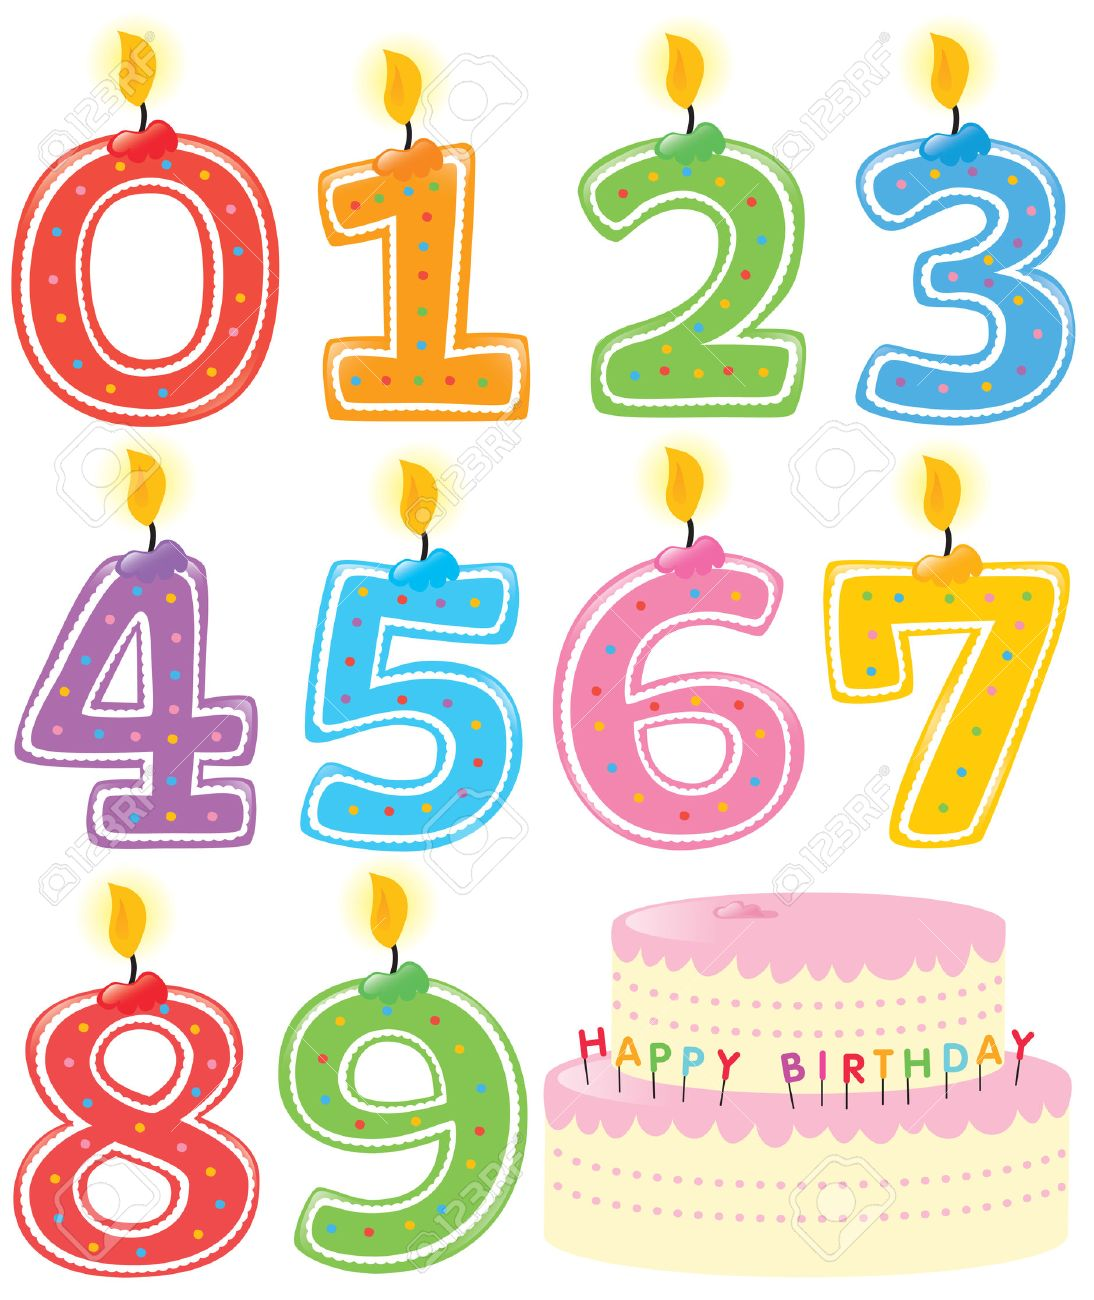 Numbered Birthday Candles and Cake - 5529019